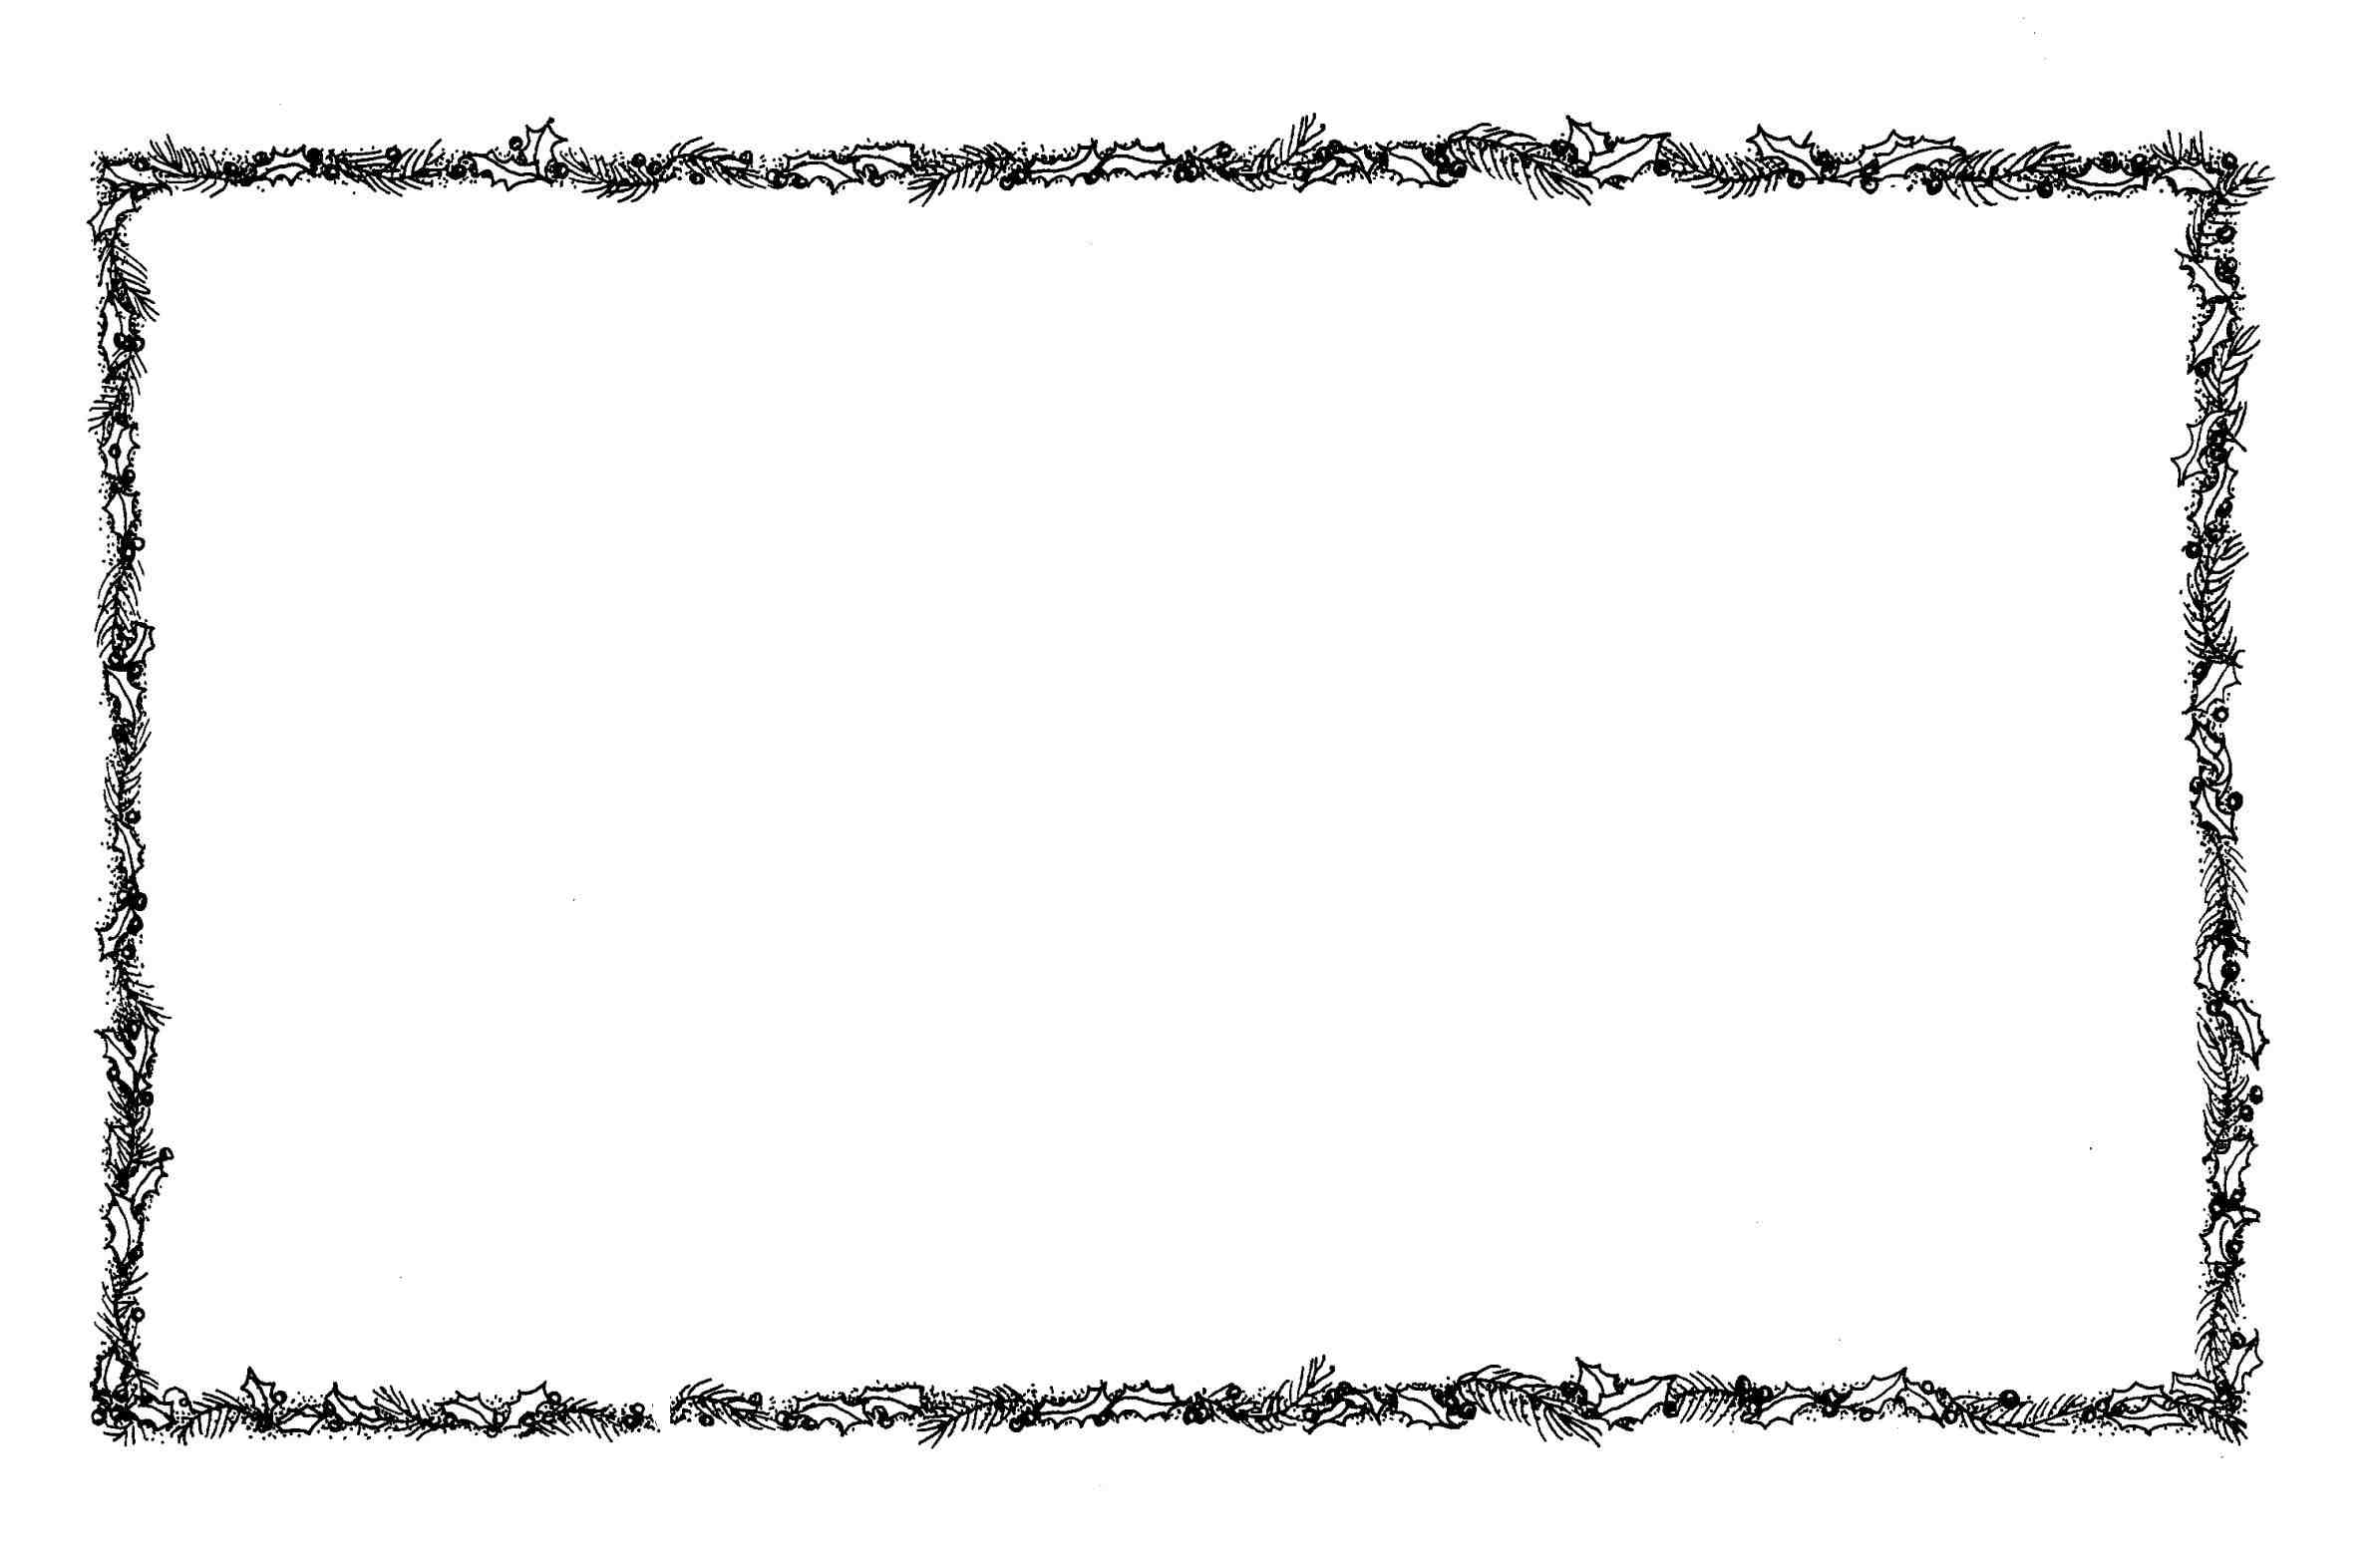 2387x1568 Christmas Snowflake Clipart Border Cheminee.website